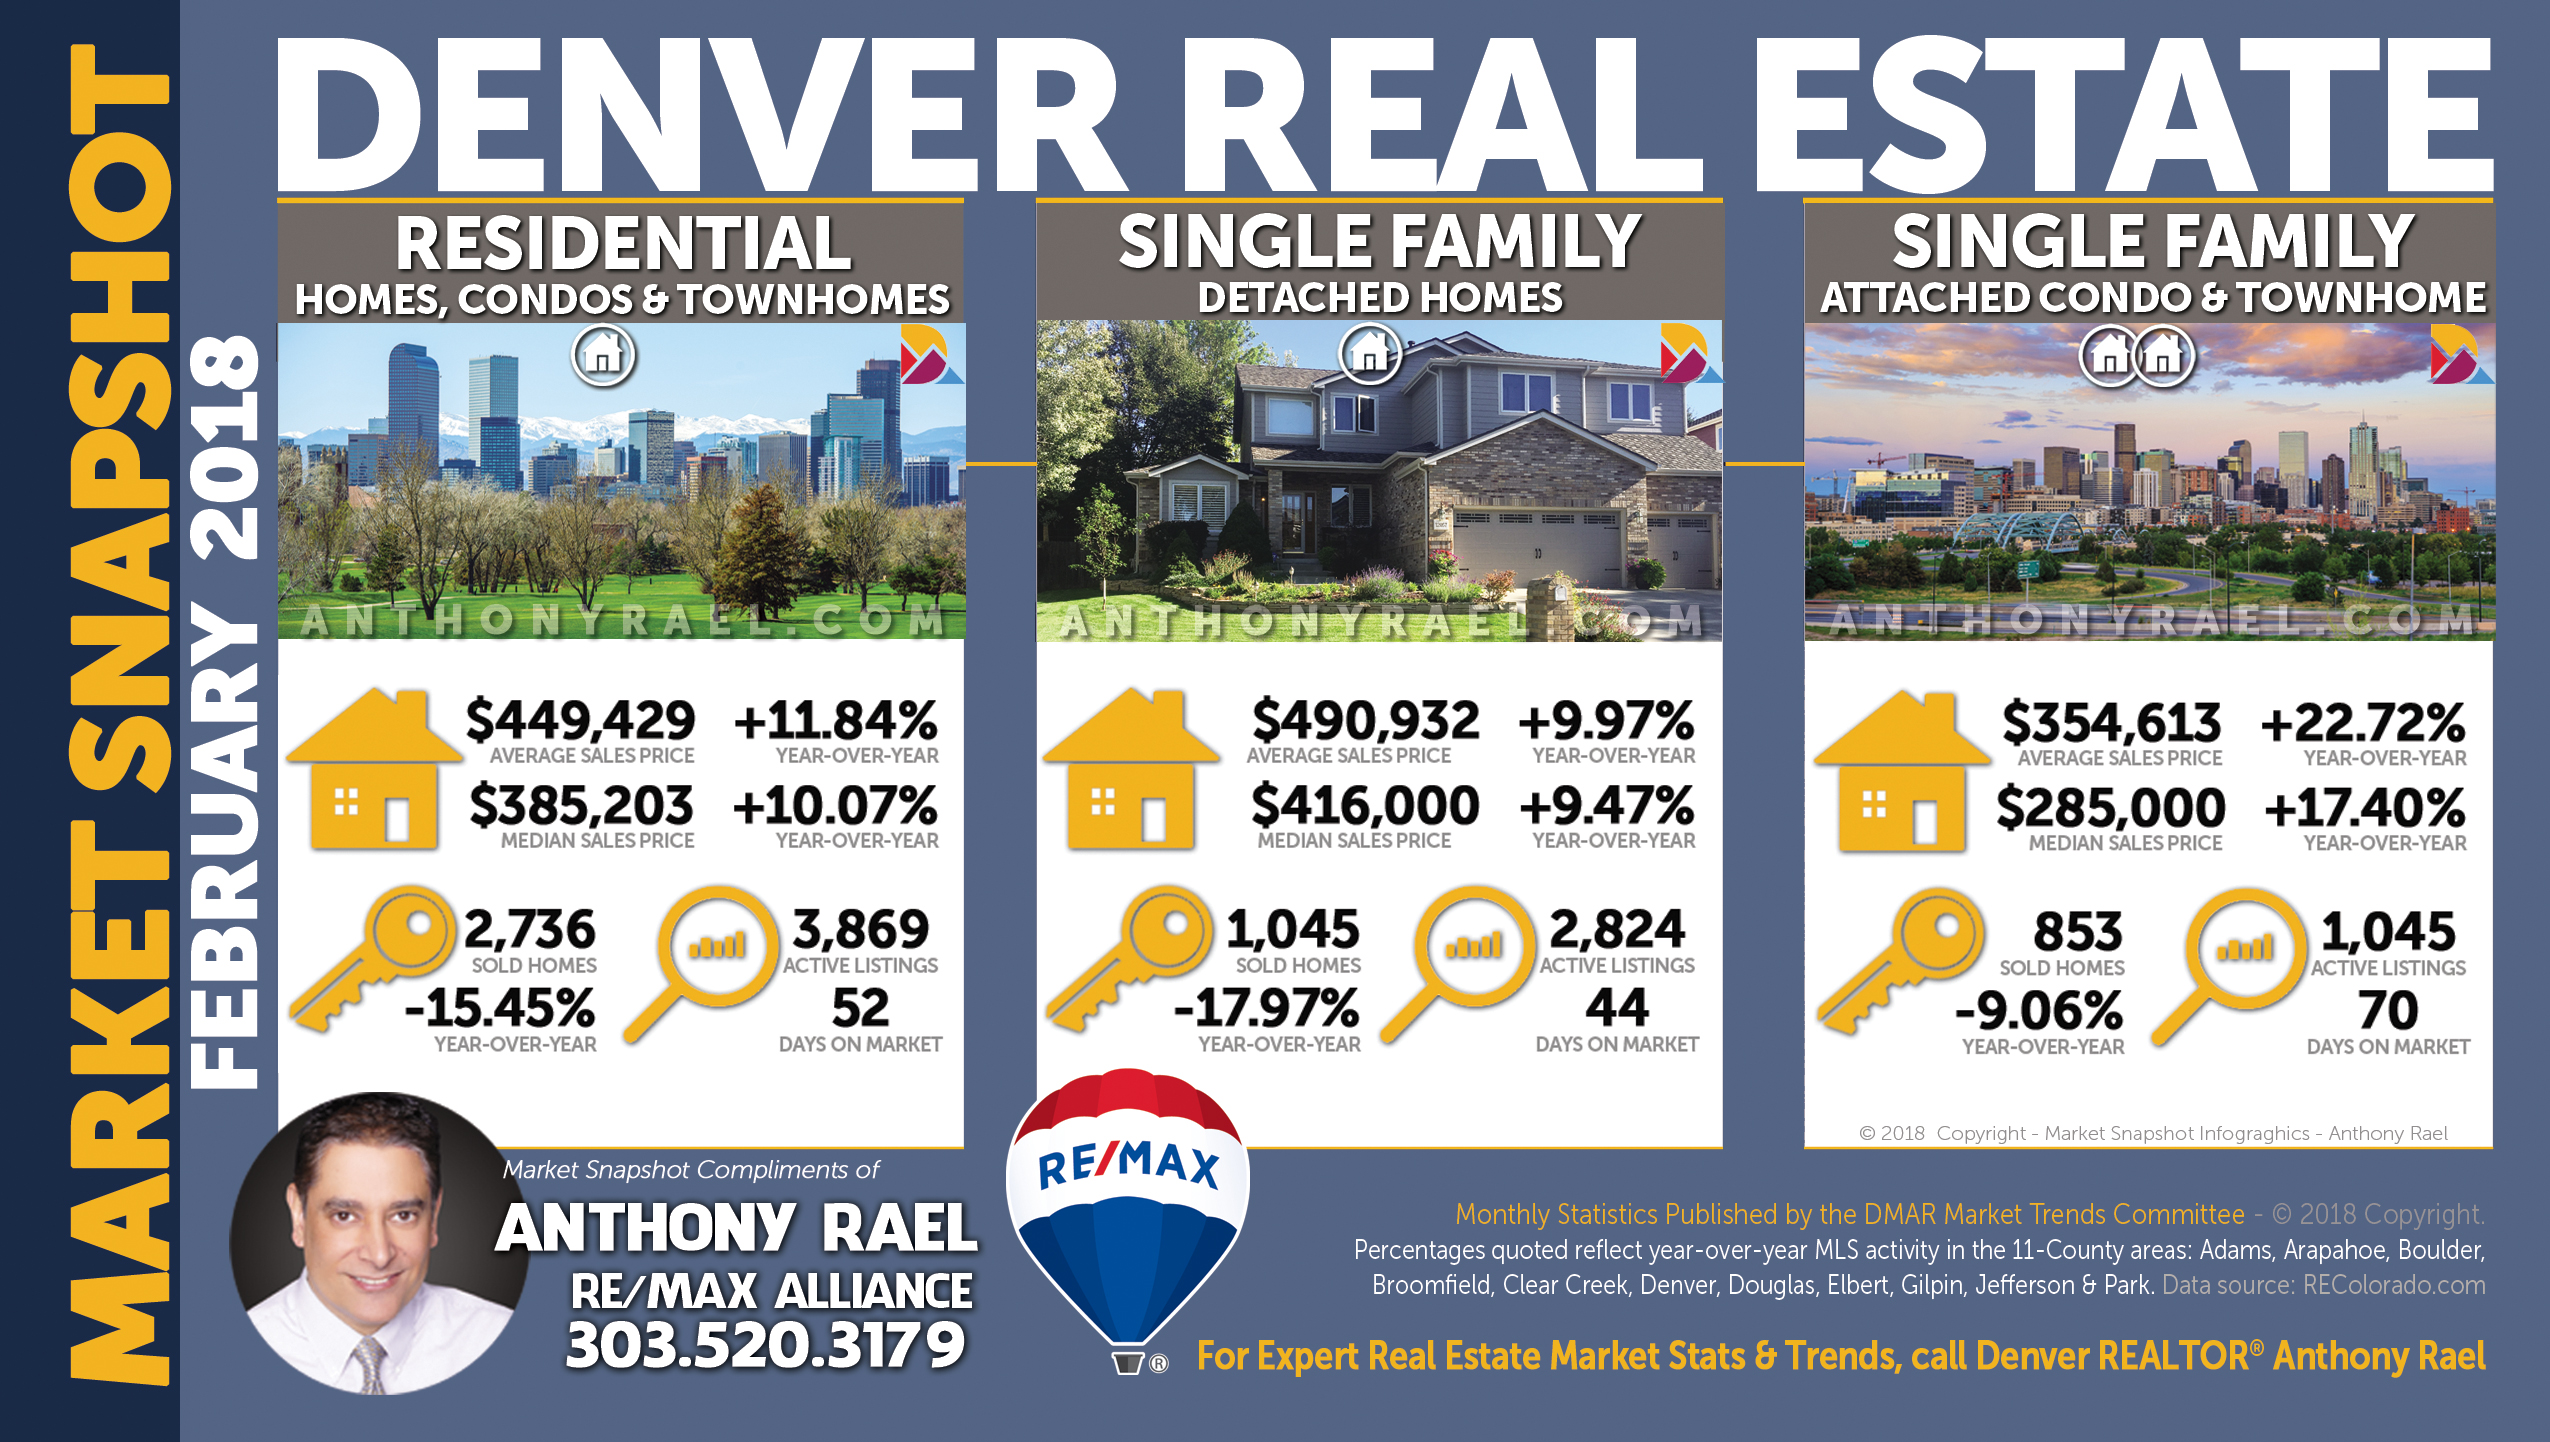 Denver Colorado Single Family Homes | Single Family Condos | Residential Market | Luxury Market ($1 Million +)